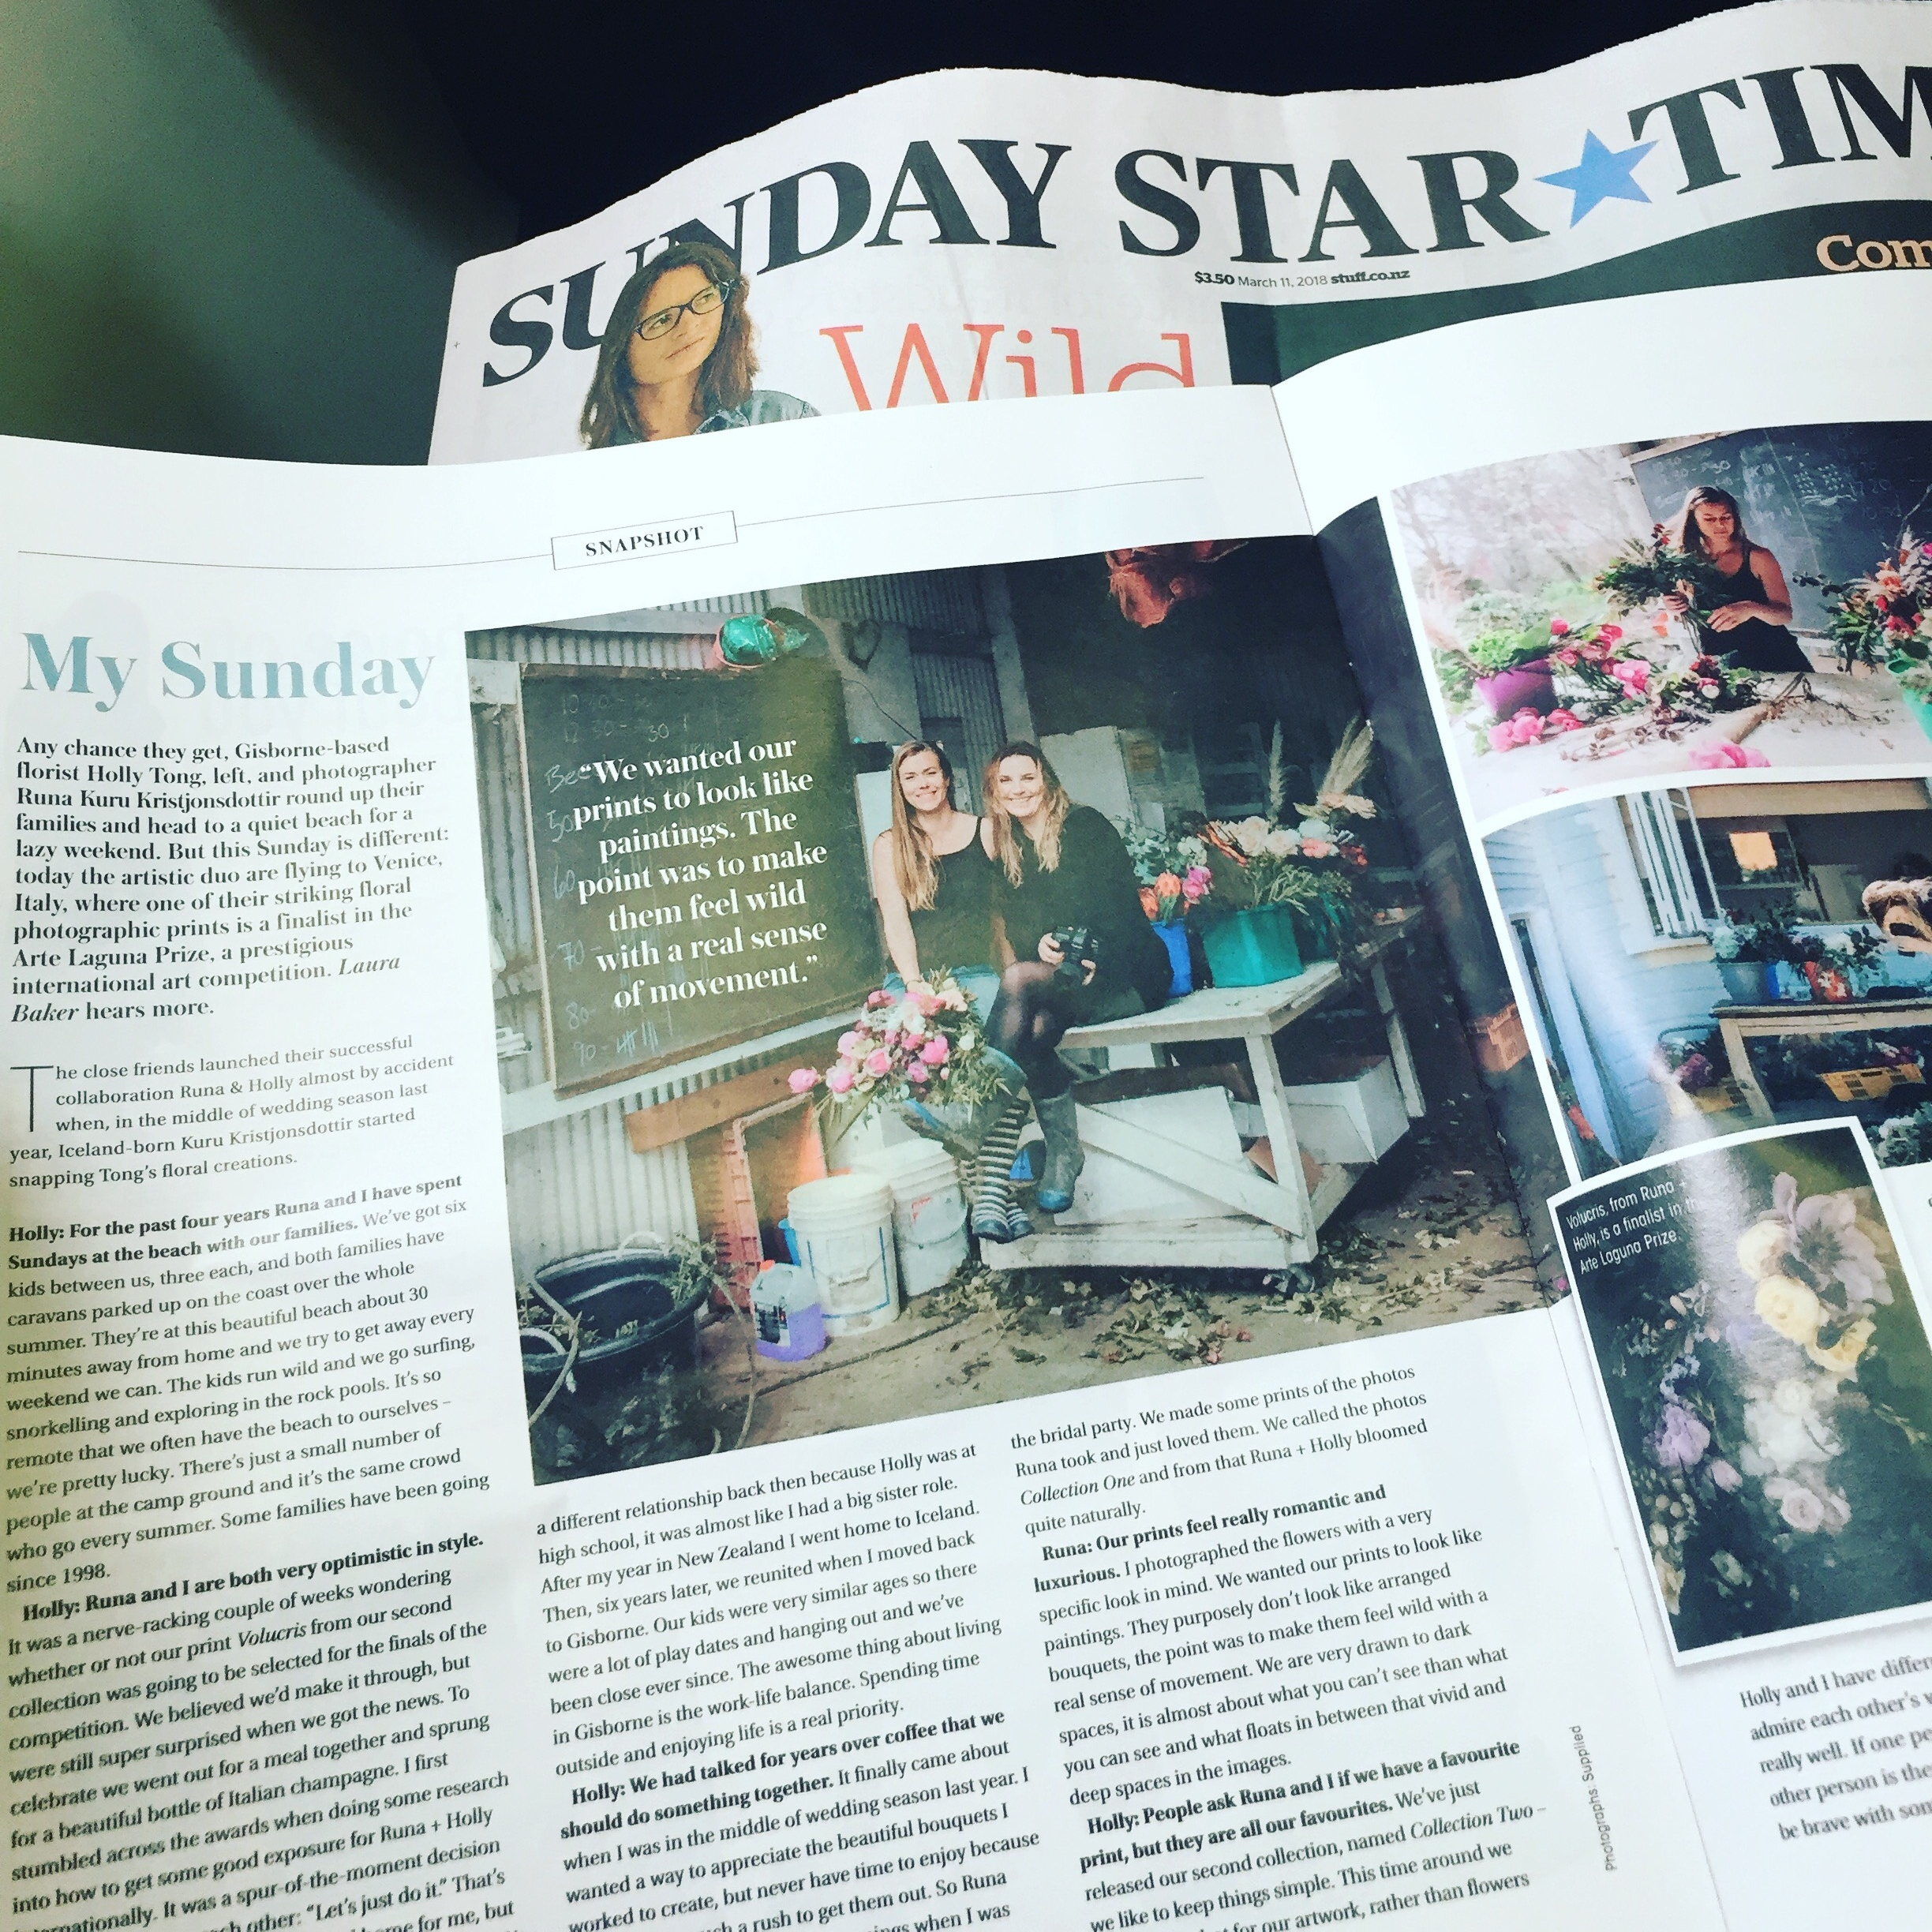 Sunday Star Times, Sunday Magazine.